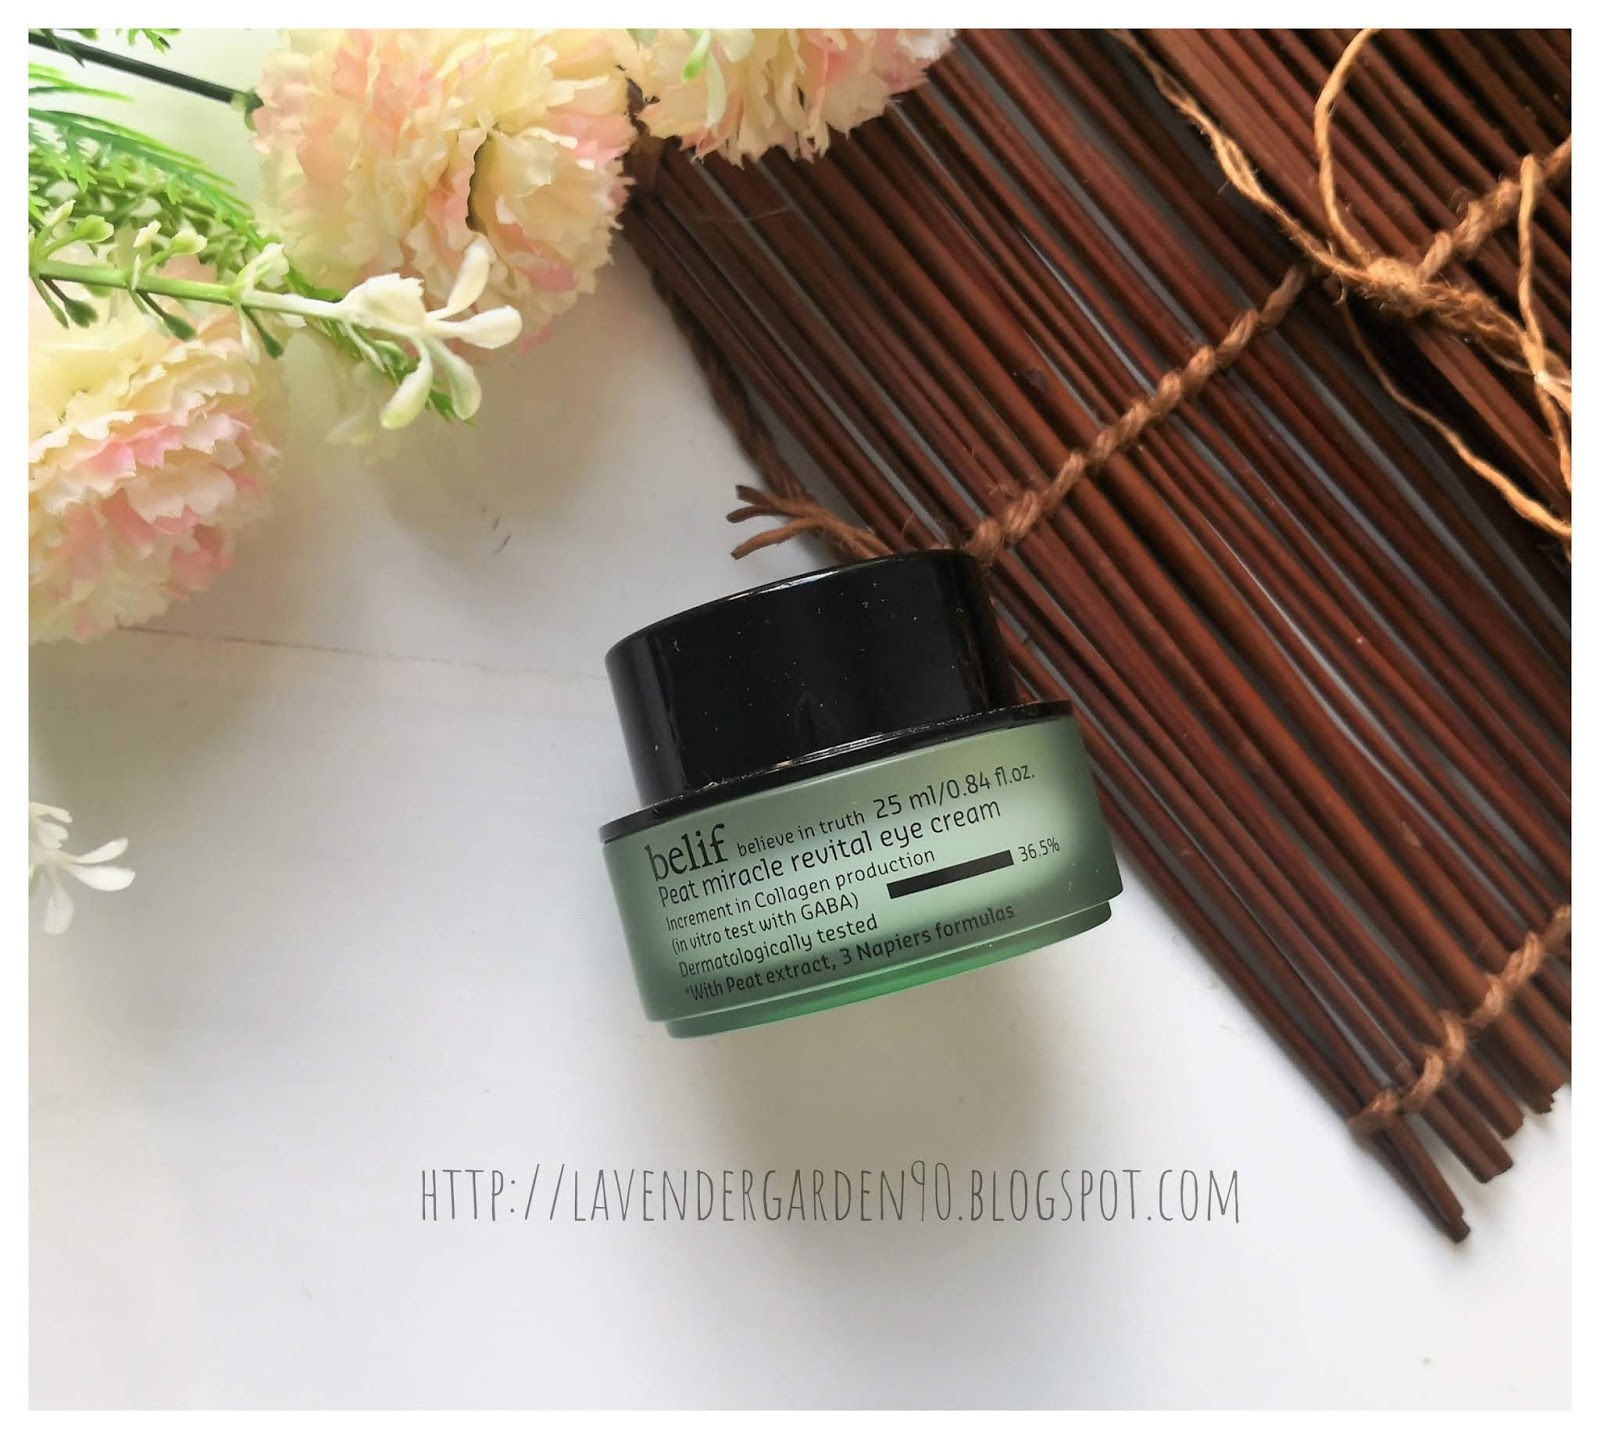 Peat Miracle Revital Eye Cream by belif #6